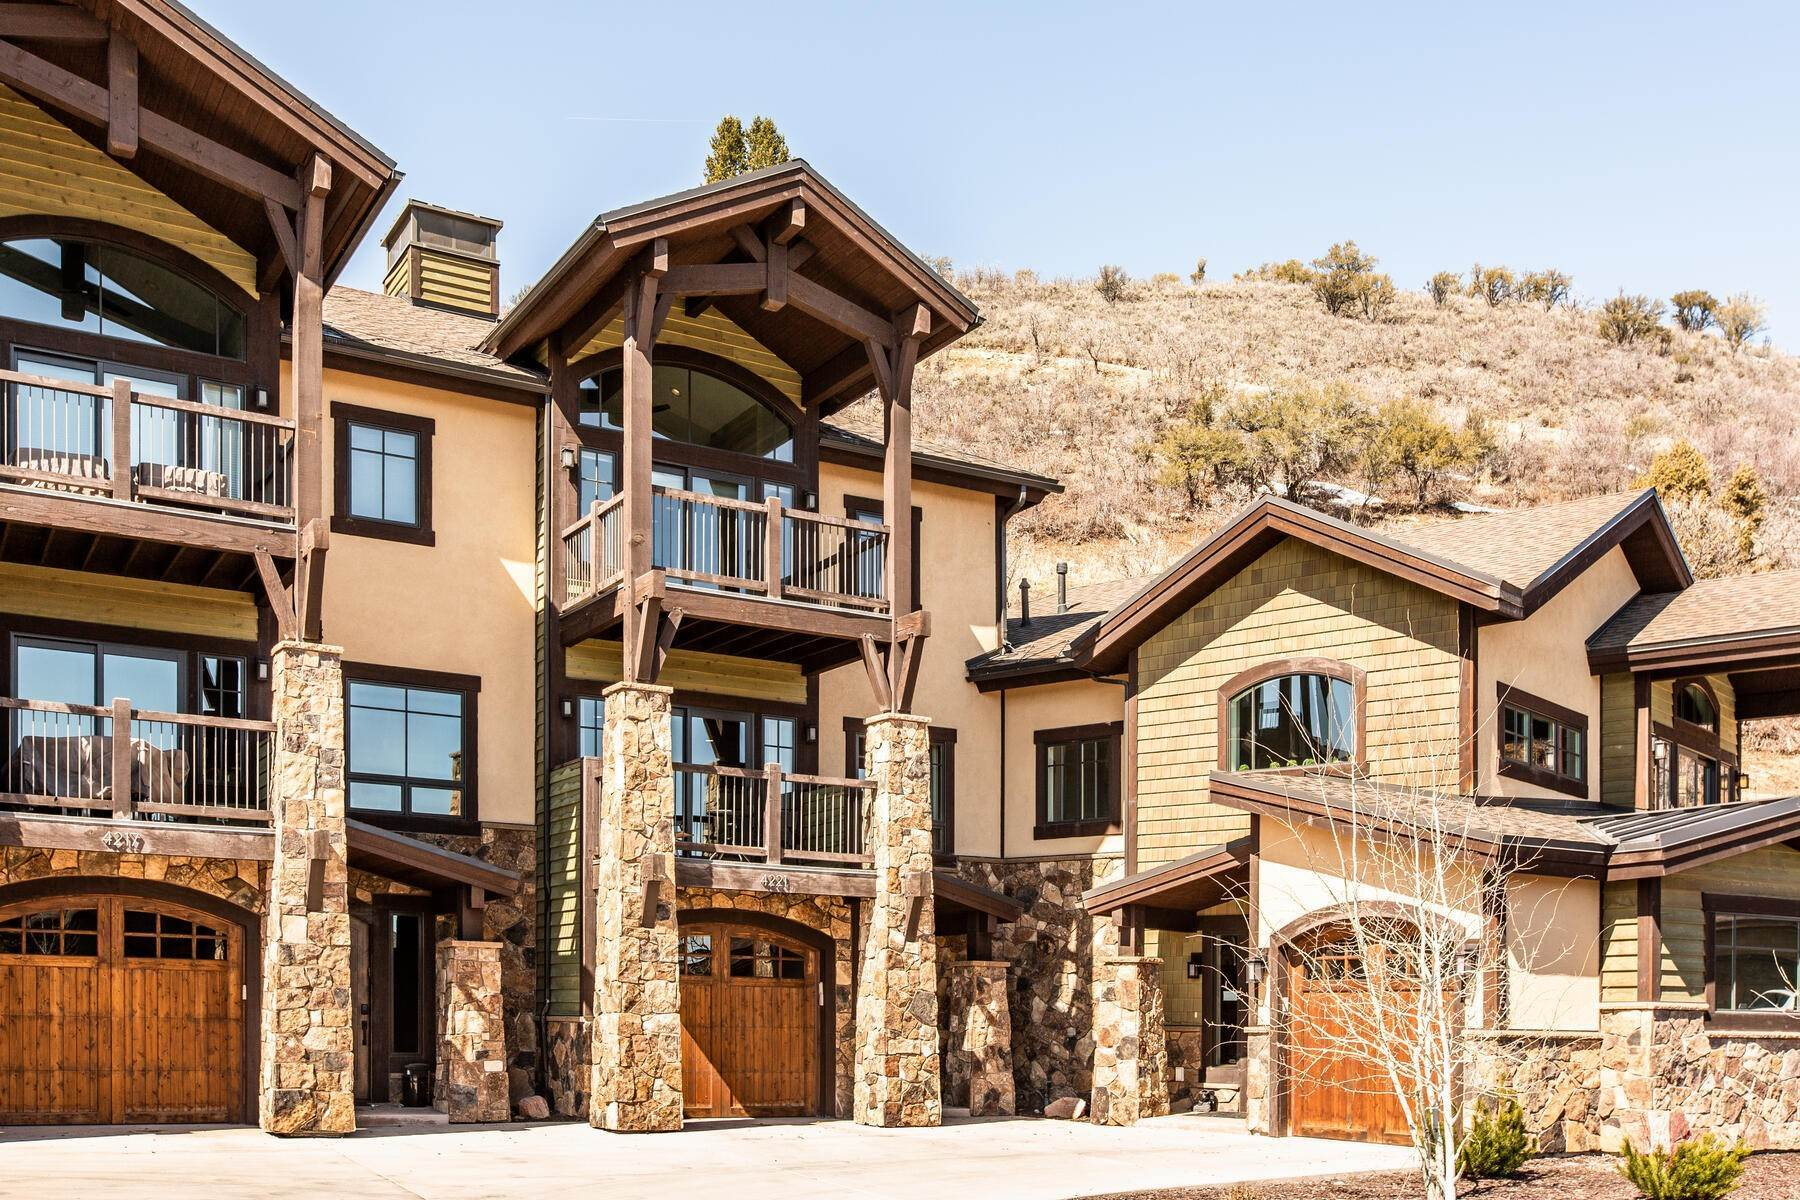 townhouses for Sale at Walk to Skiing from this Turn-Key Canyons Village Townhome 4221 Fairway Lane, D-4 Park City, Utah 84098 United States